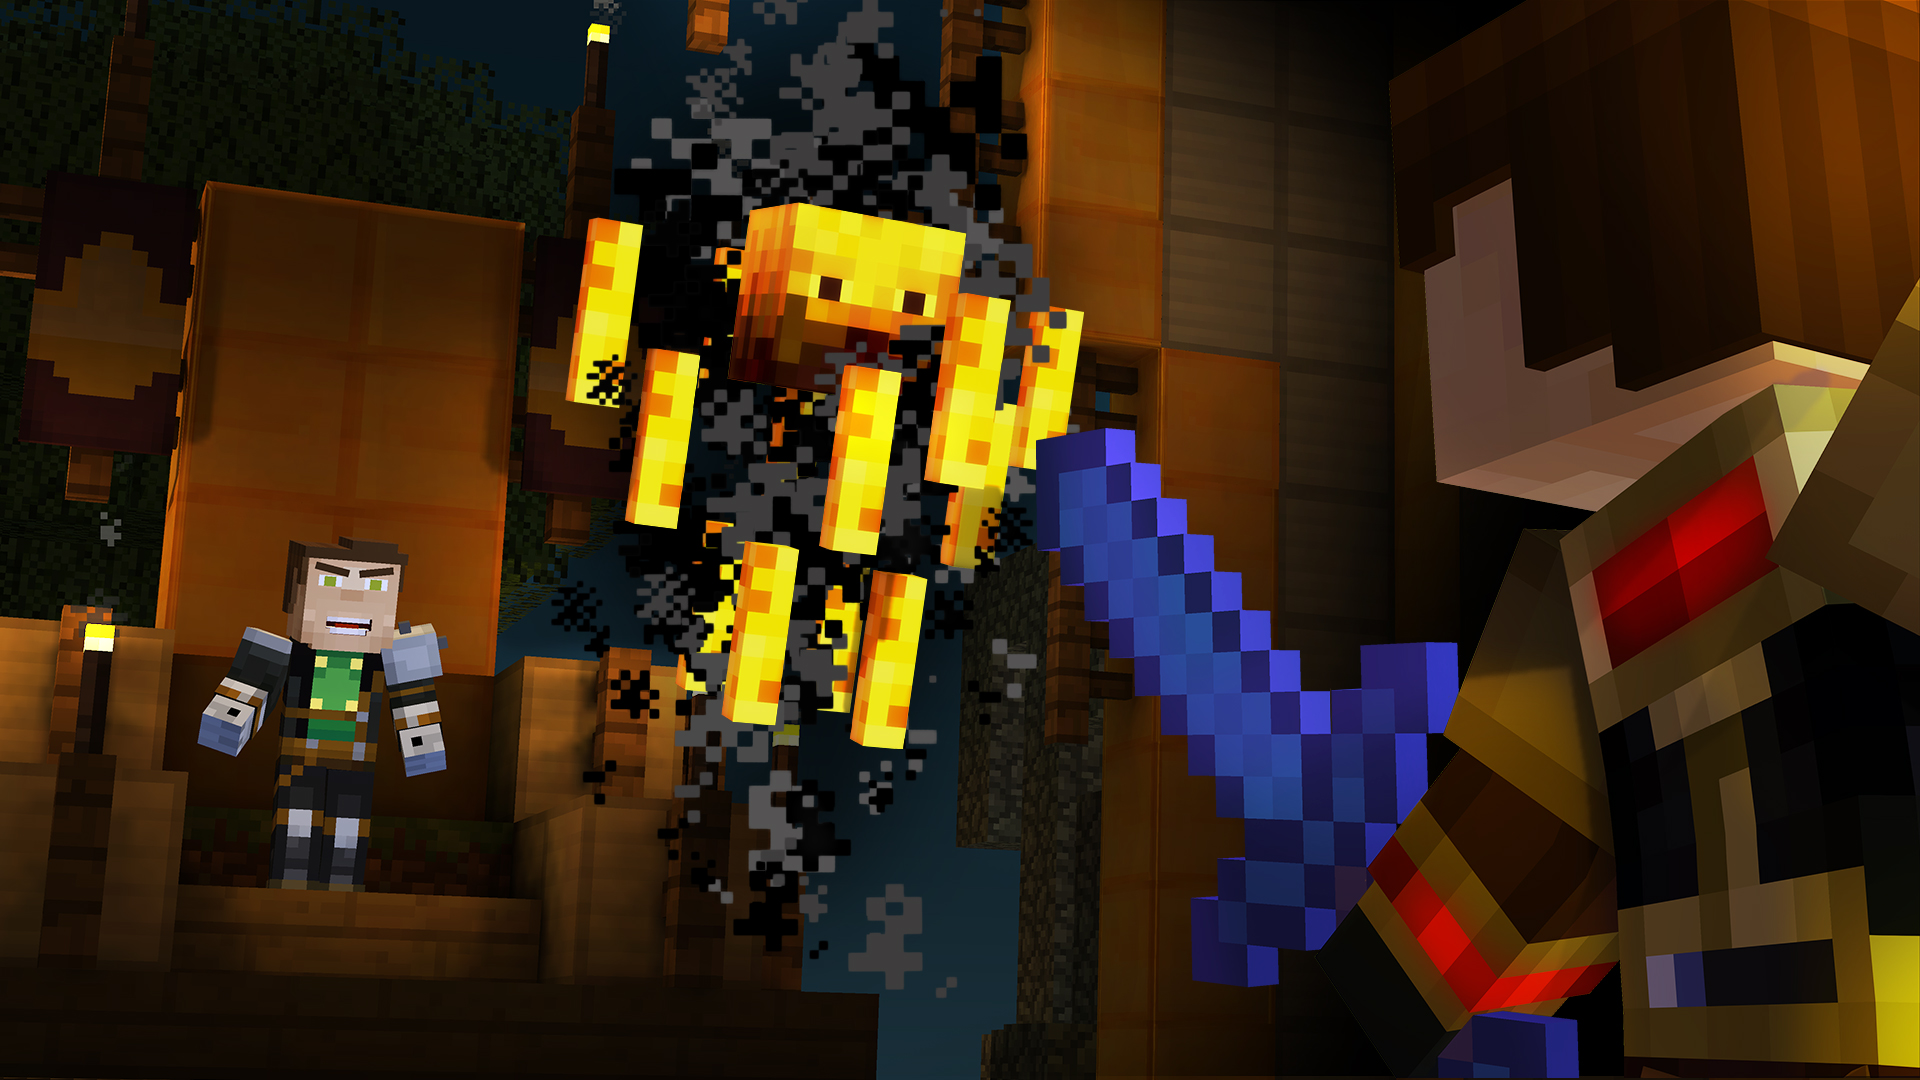 Order Up! Launch Trailer For Minecraft: Story Mode Episode 5 Has Landed